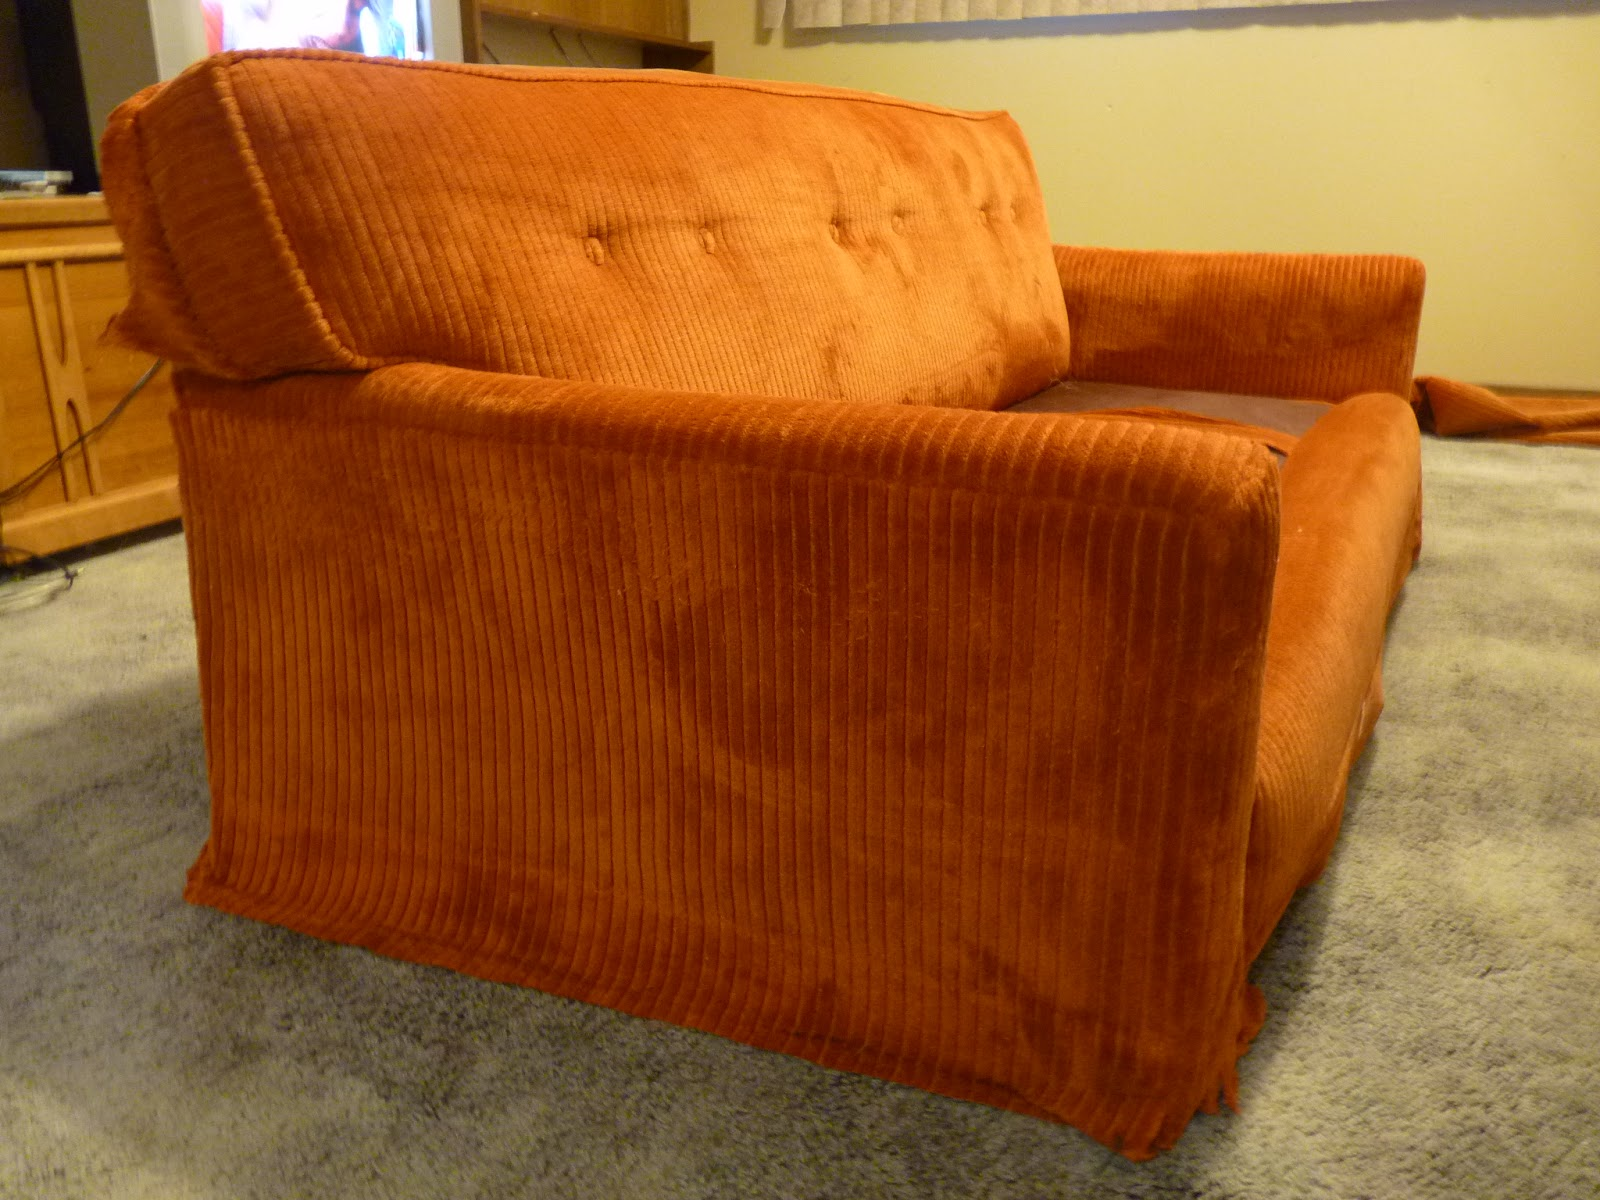 how do you remove permanent marker from leather sofa sofas london on d i y e s g n to re upholster a